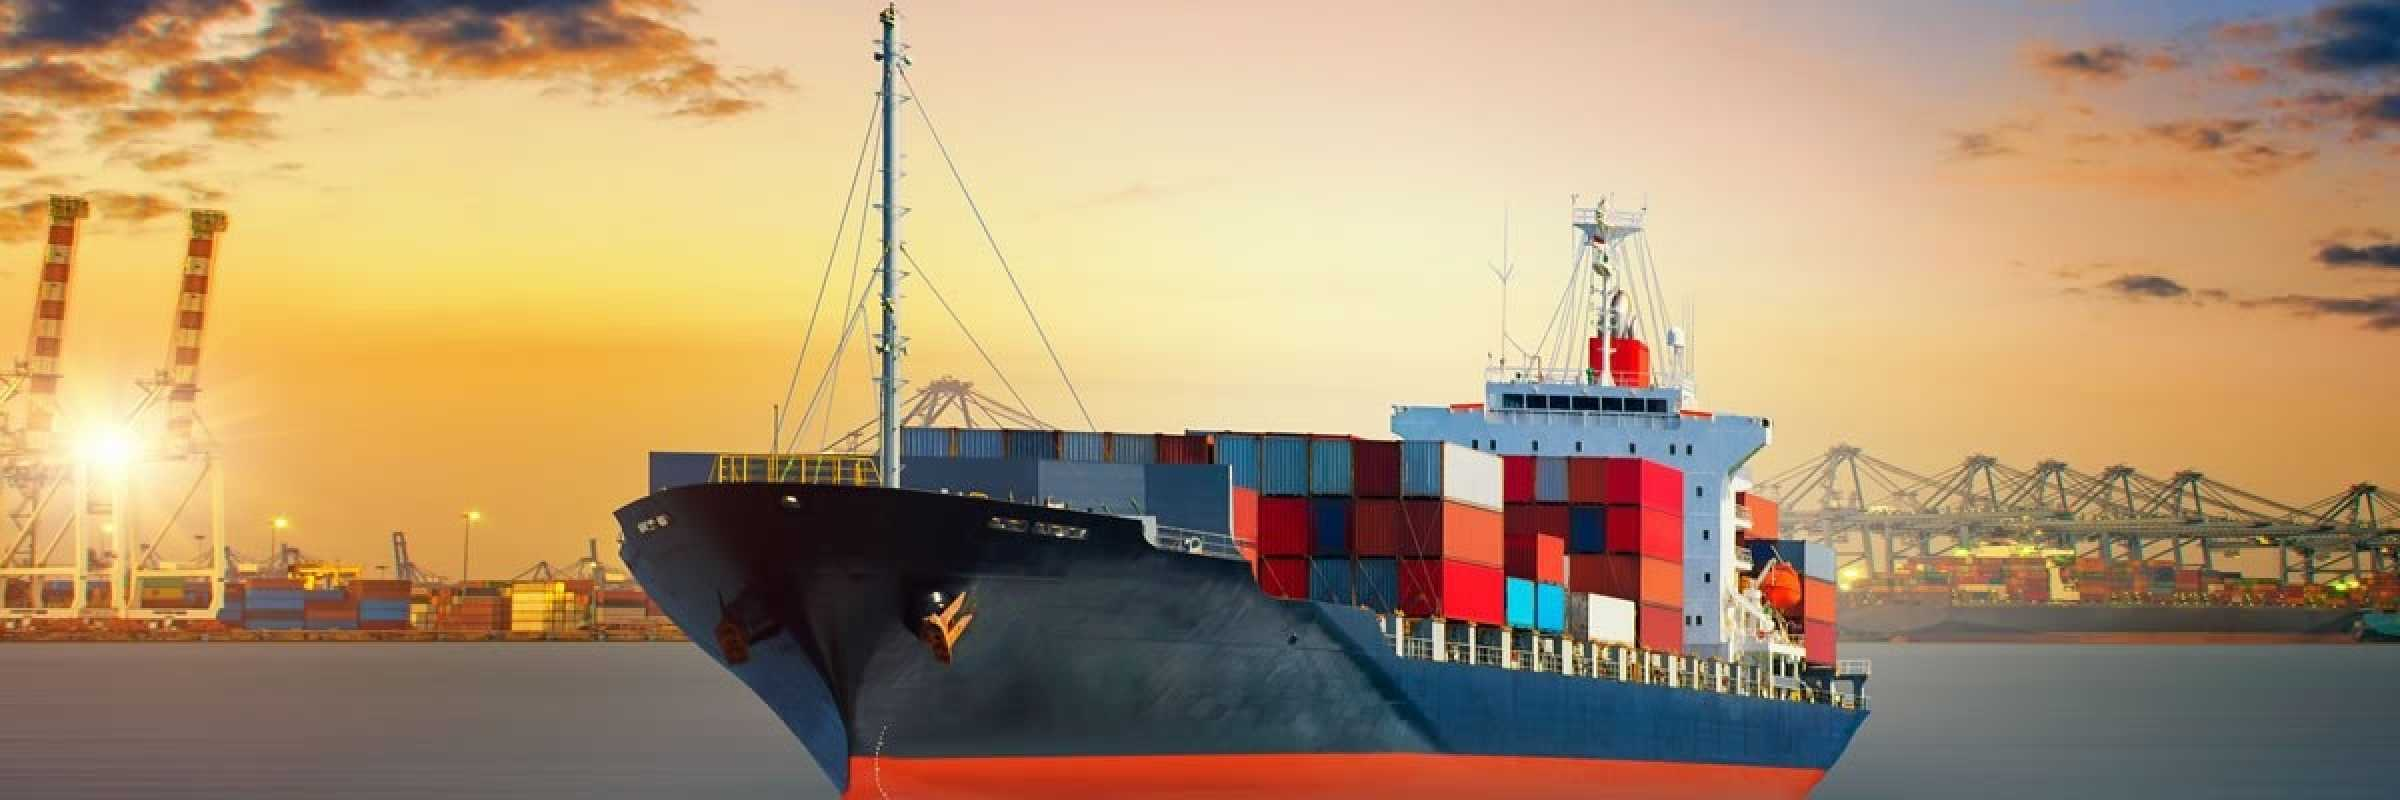 IMO supporting sulphur 2020 consistent implementation